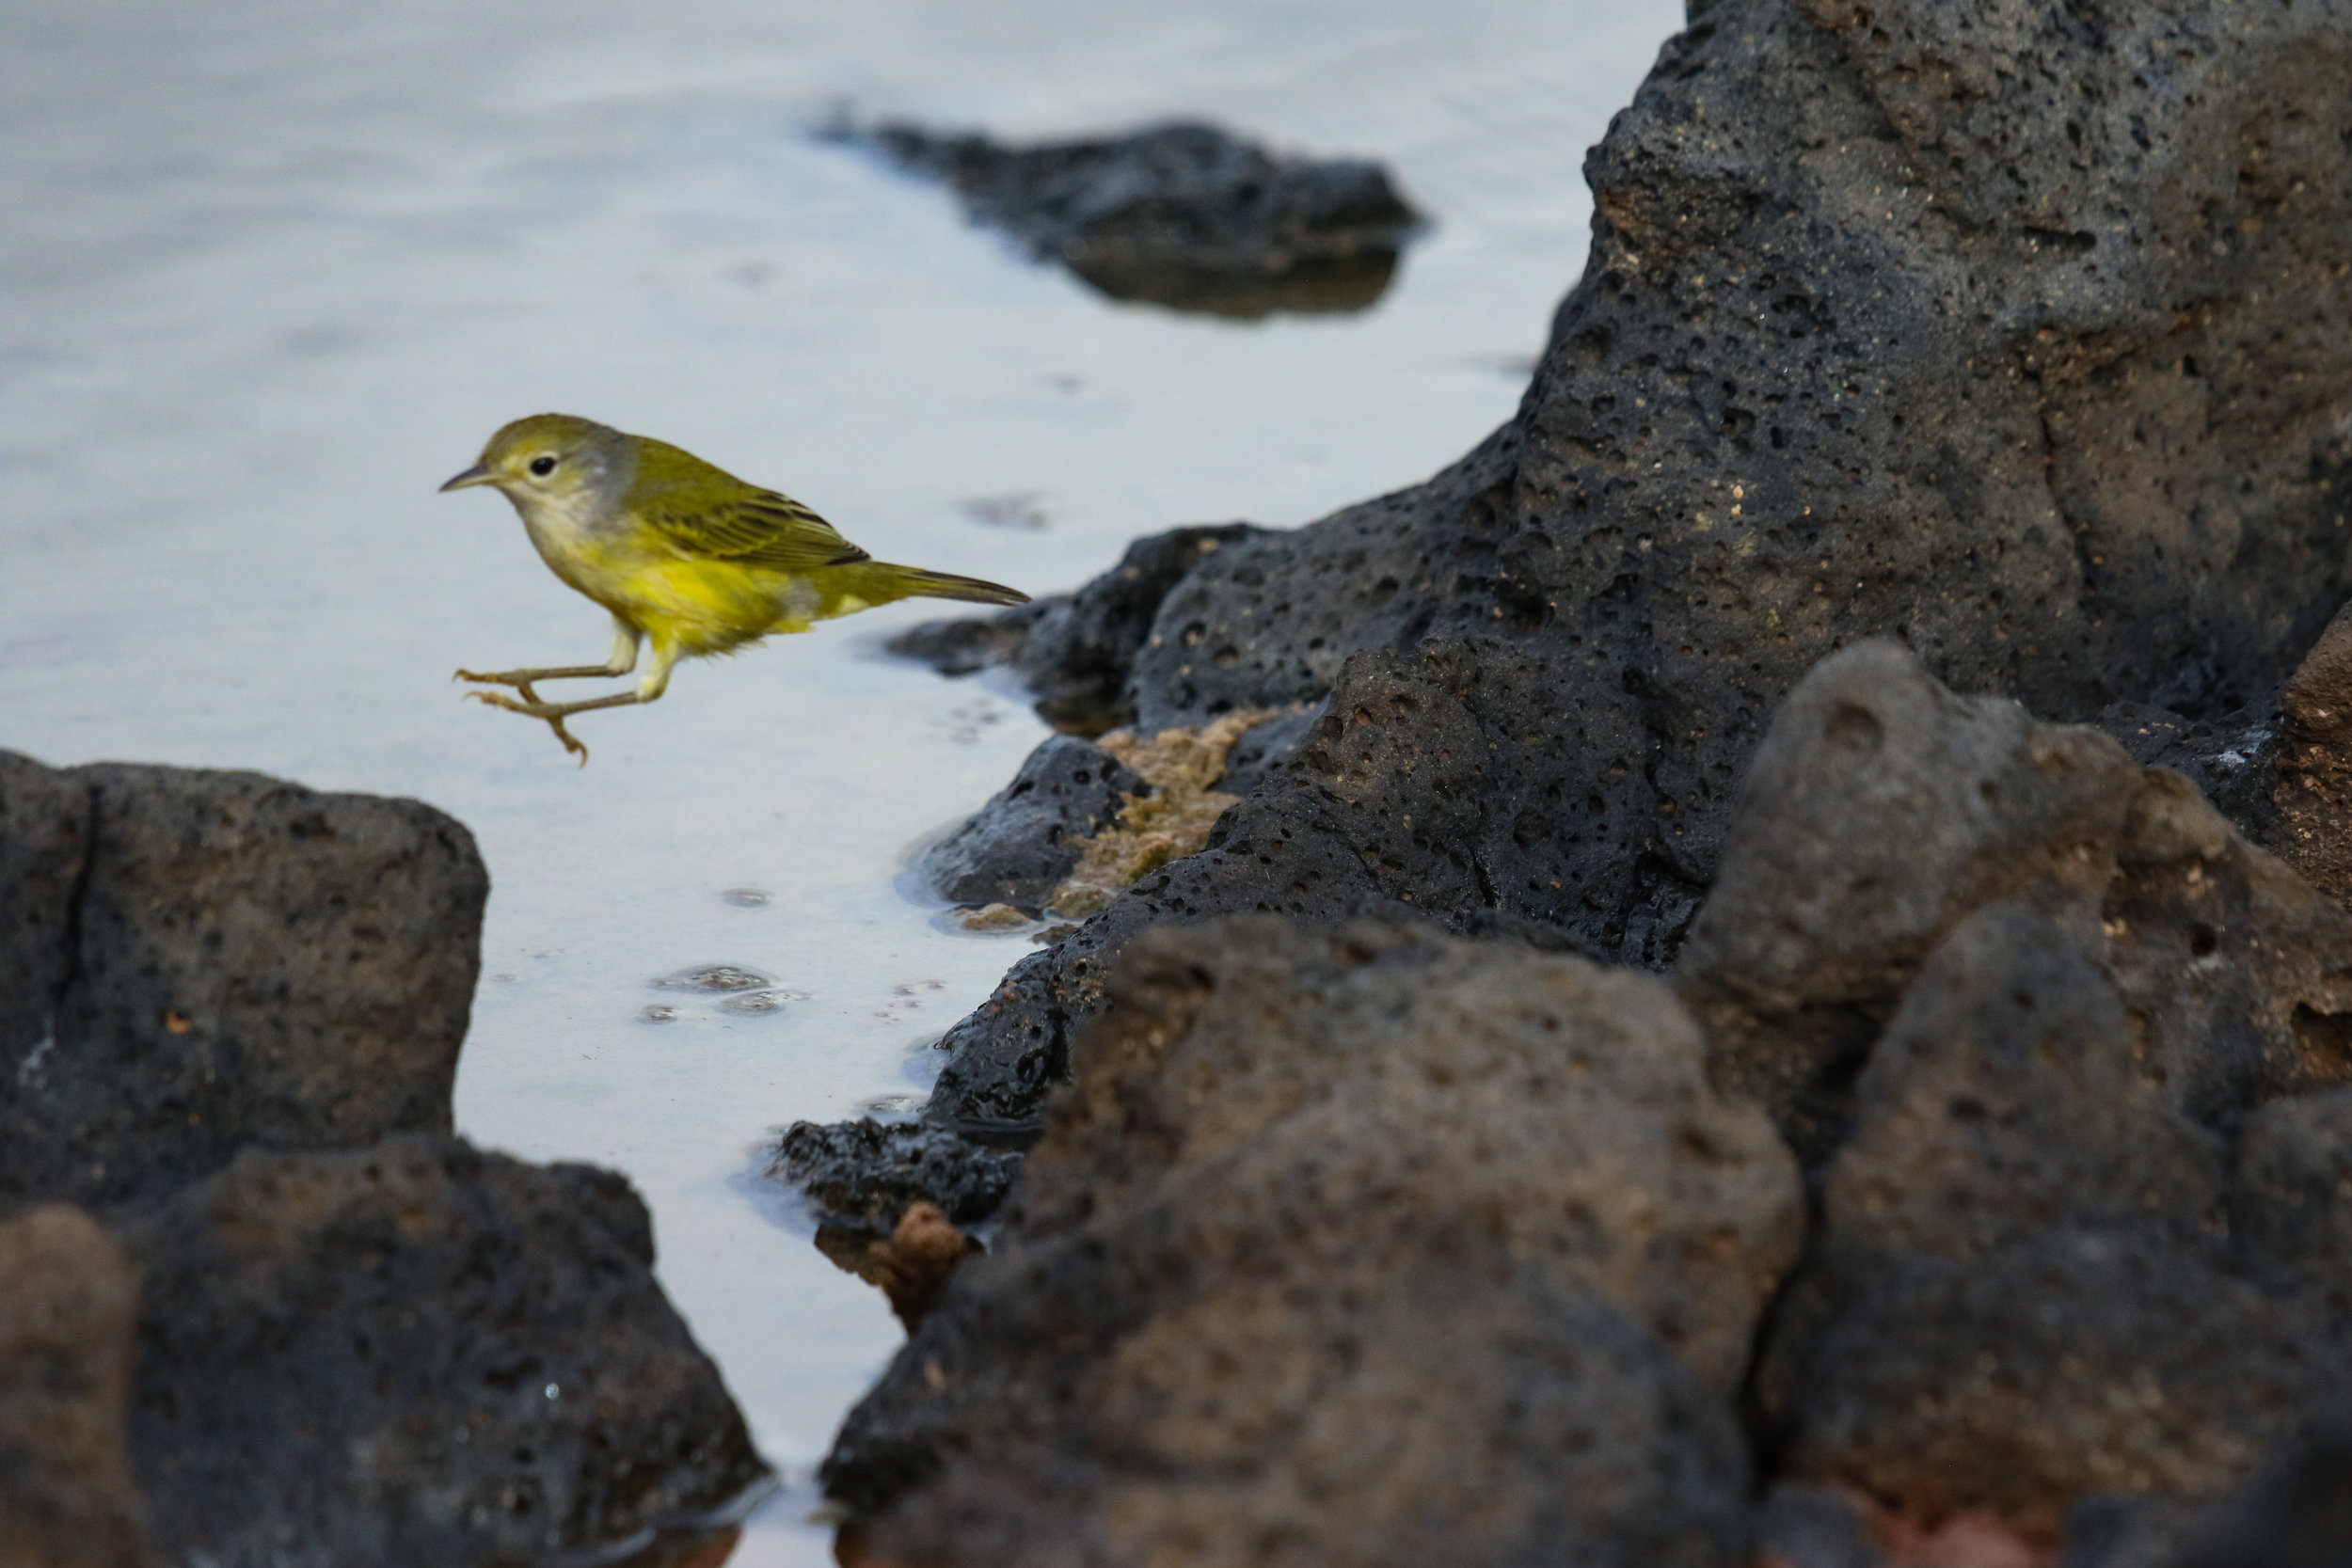 Yellow Warbler Bird Galapagos Islands Ecuador by Millie Kerr -1 (1).jpg